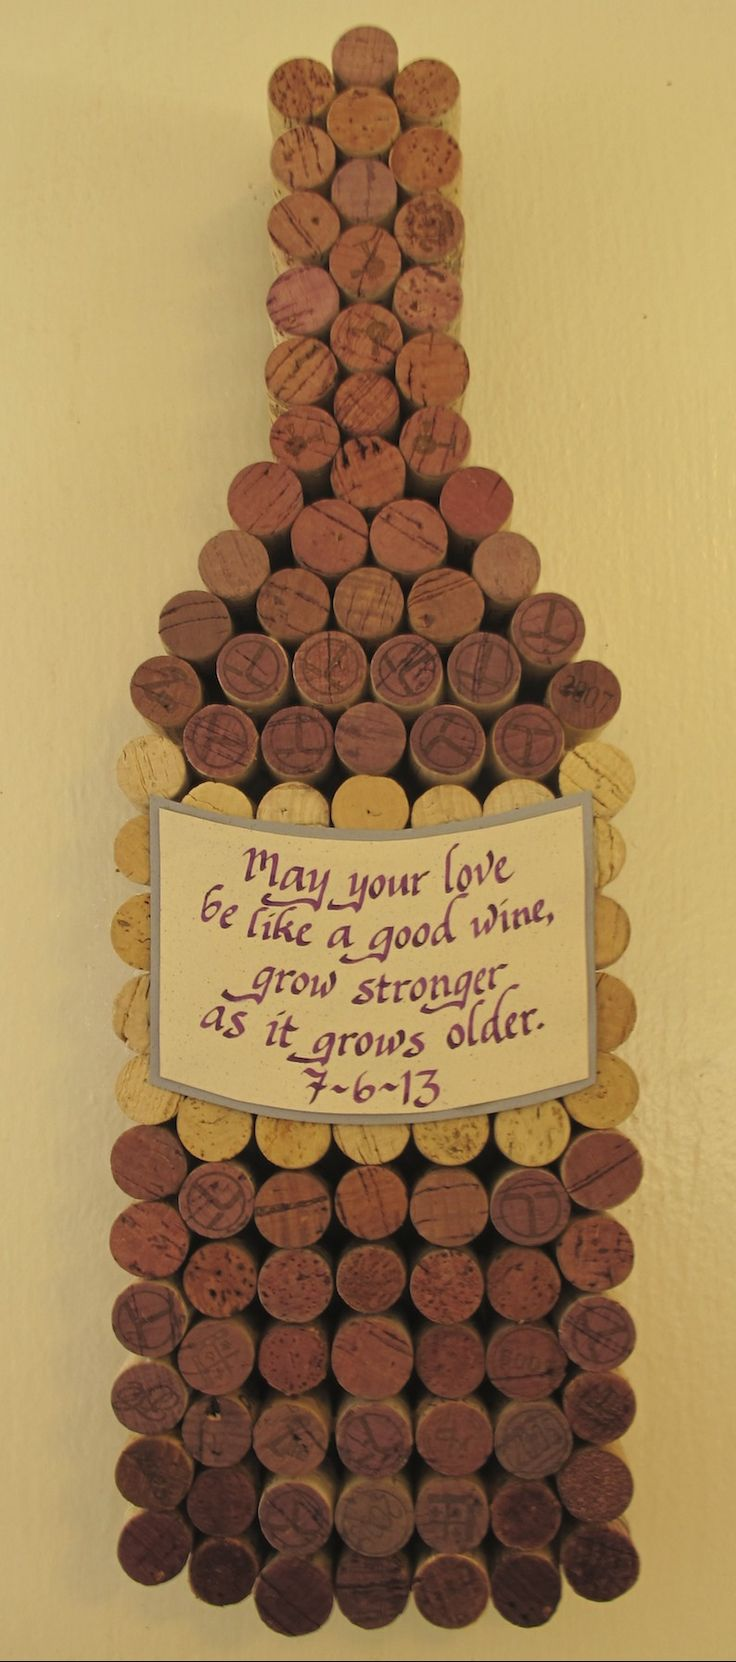 Great wedding gift idea for wine lovers! Made-to-order on Etsy: https://www.etsy.com/listing/94370001/handmade-wine-cork-wine-bottle-cork?ref=shop_home_active